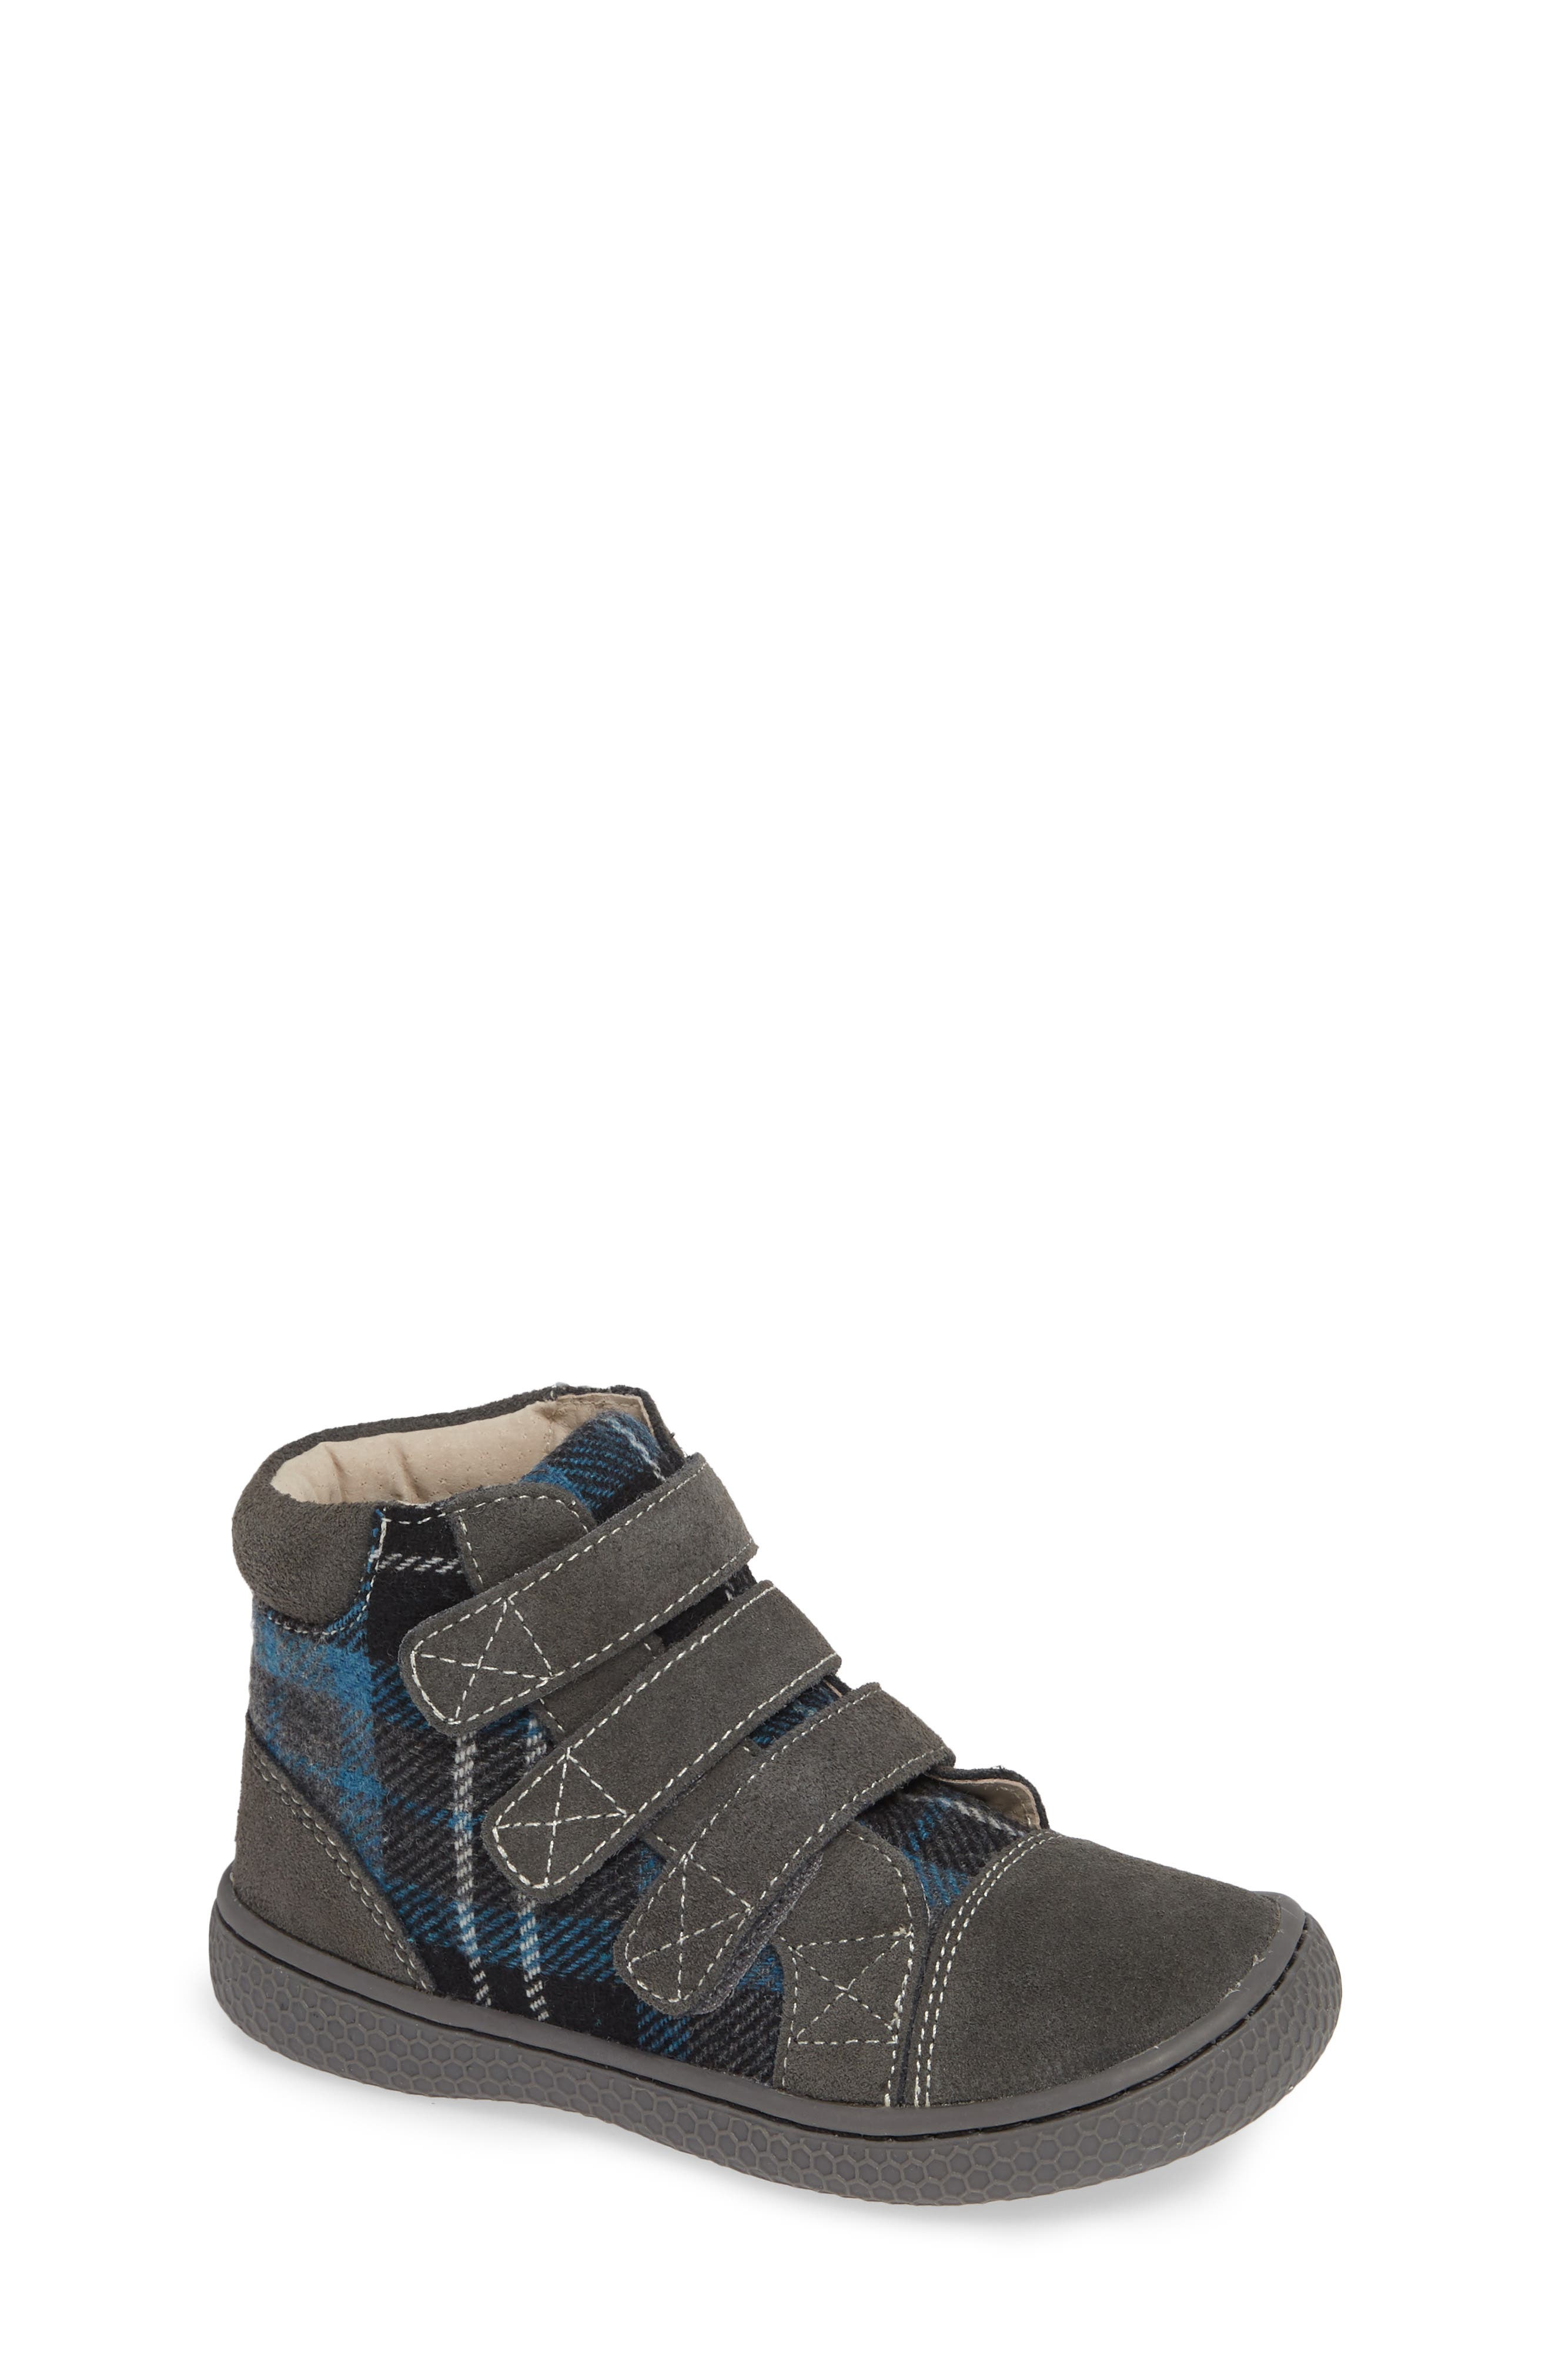 'Jamie' High Top Sneaker,                             Main thumbnail 1, color,                             GRAY PLAID